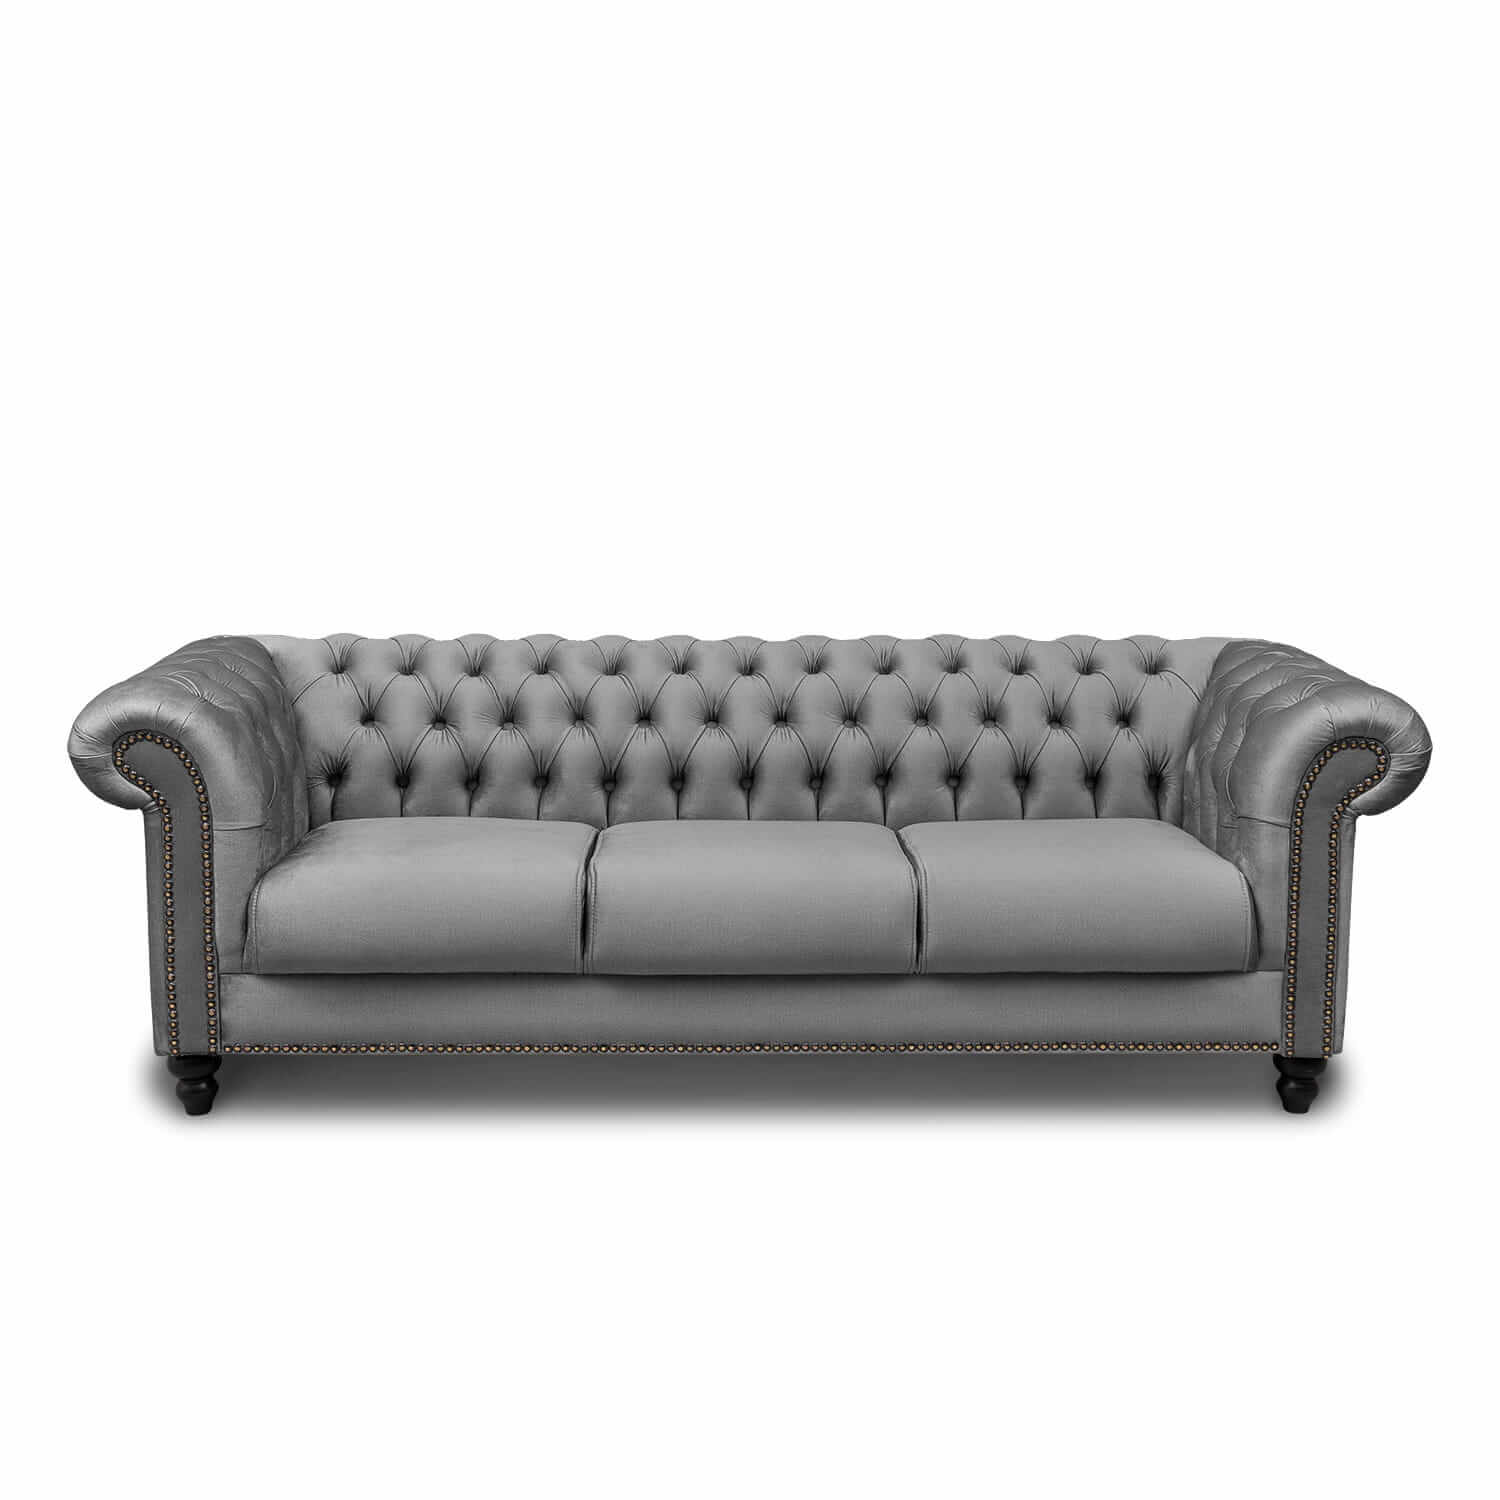 https://www.excluzive.se/wp-content/uploads/2020/10/Chesterfield-3-sits-Gra.jpg